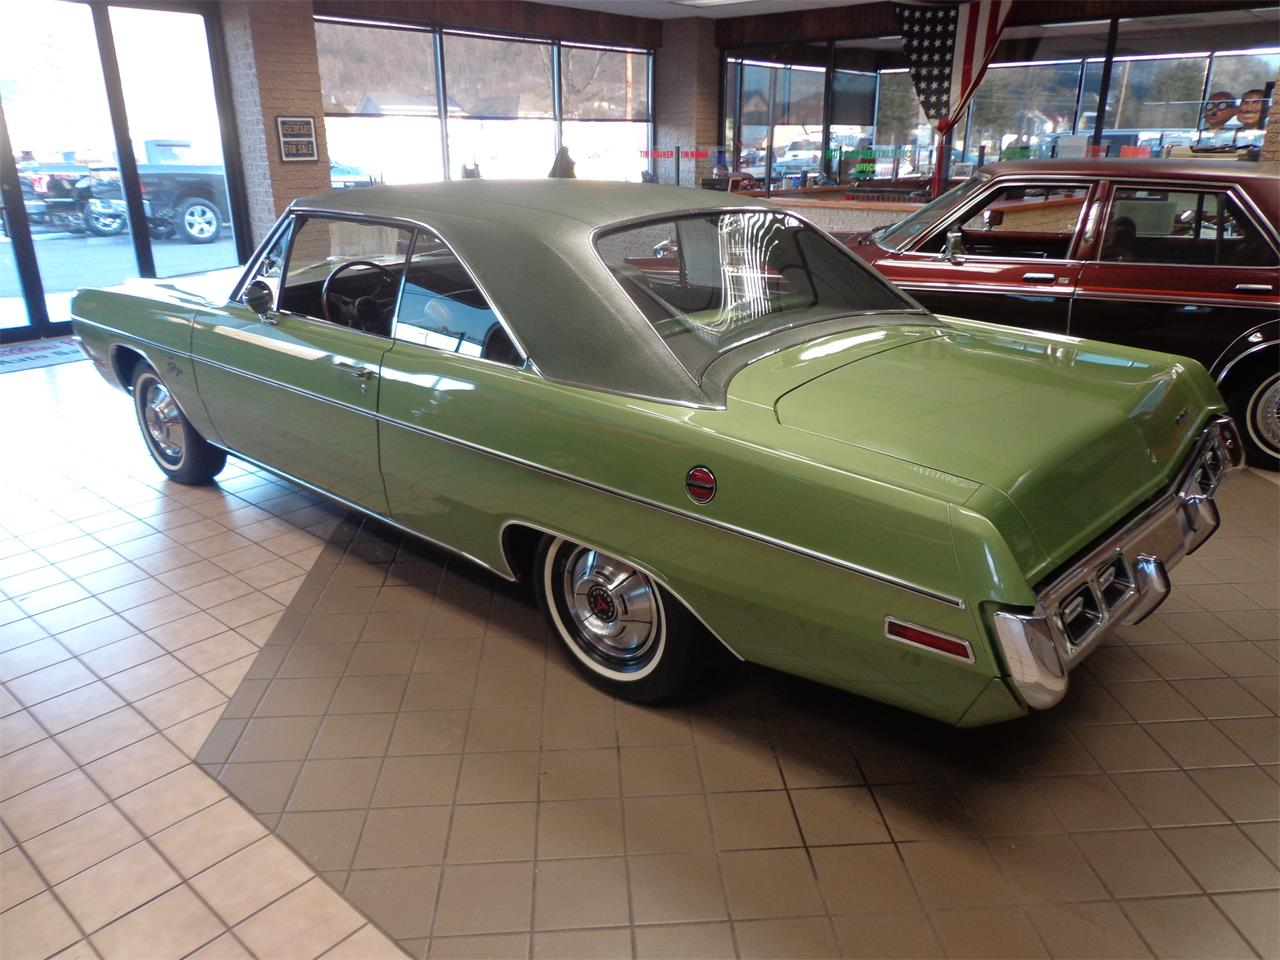 1971 Dodge Dart Swinger for sale in Mill Hall, PA – photo 6